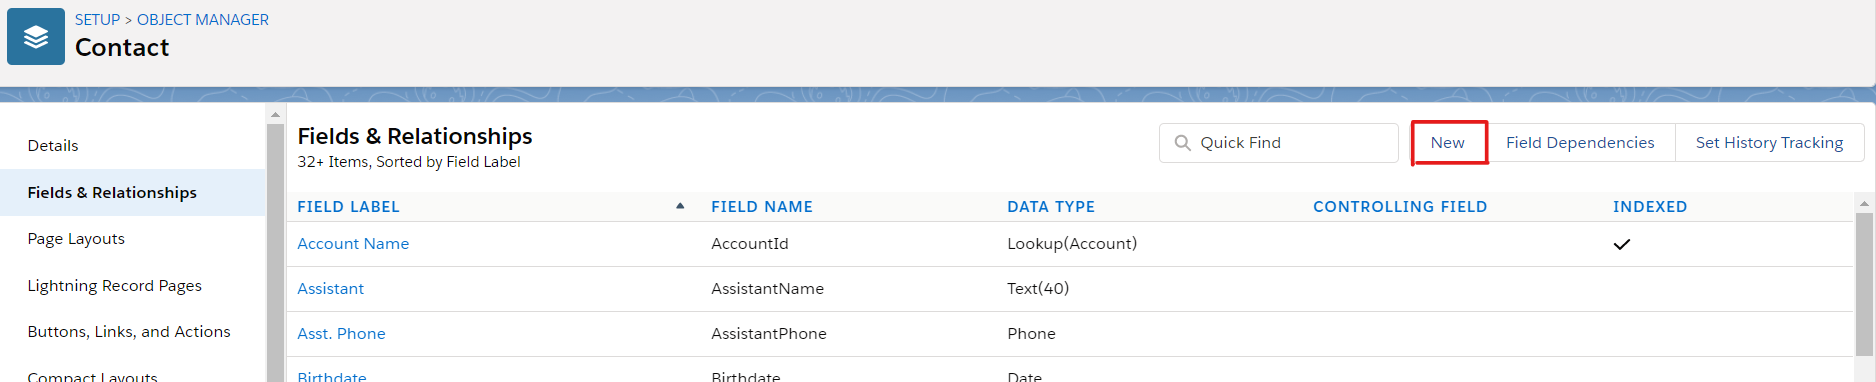 Salesforce Object Manager